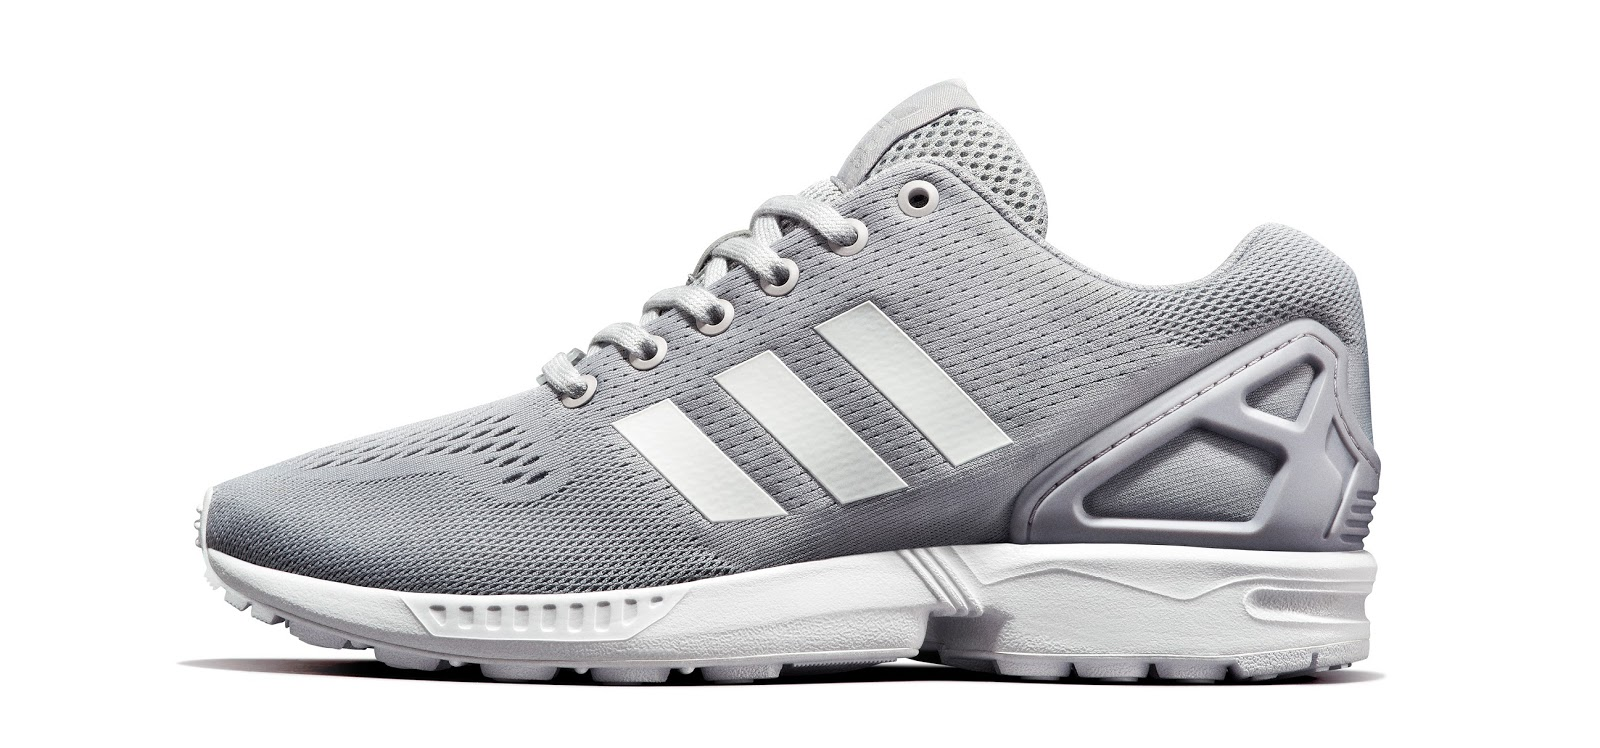 711a7a7dd80e ADIDAS ORIGINALS ZX FLUX-JD SPORTS